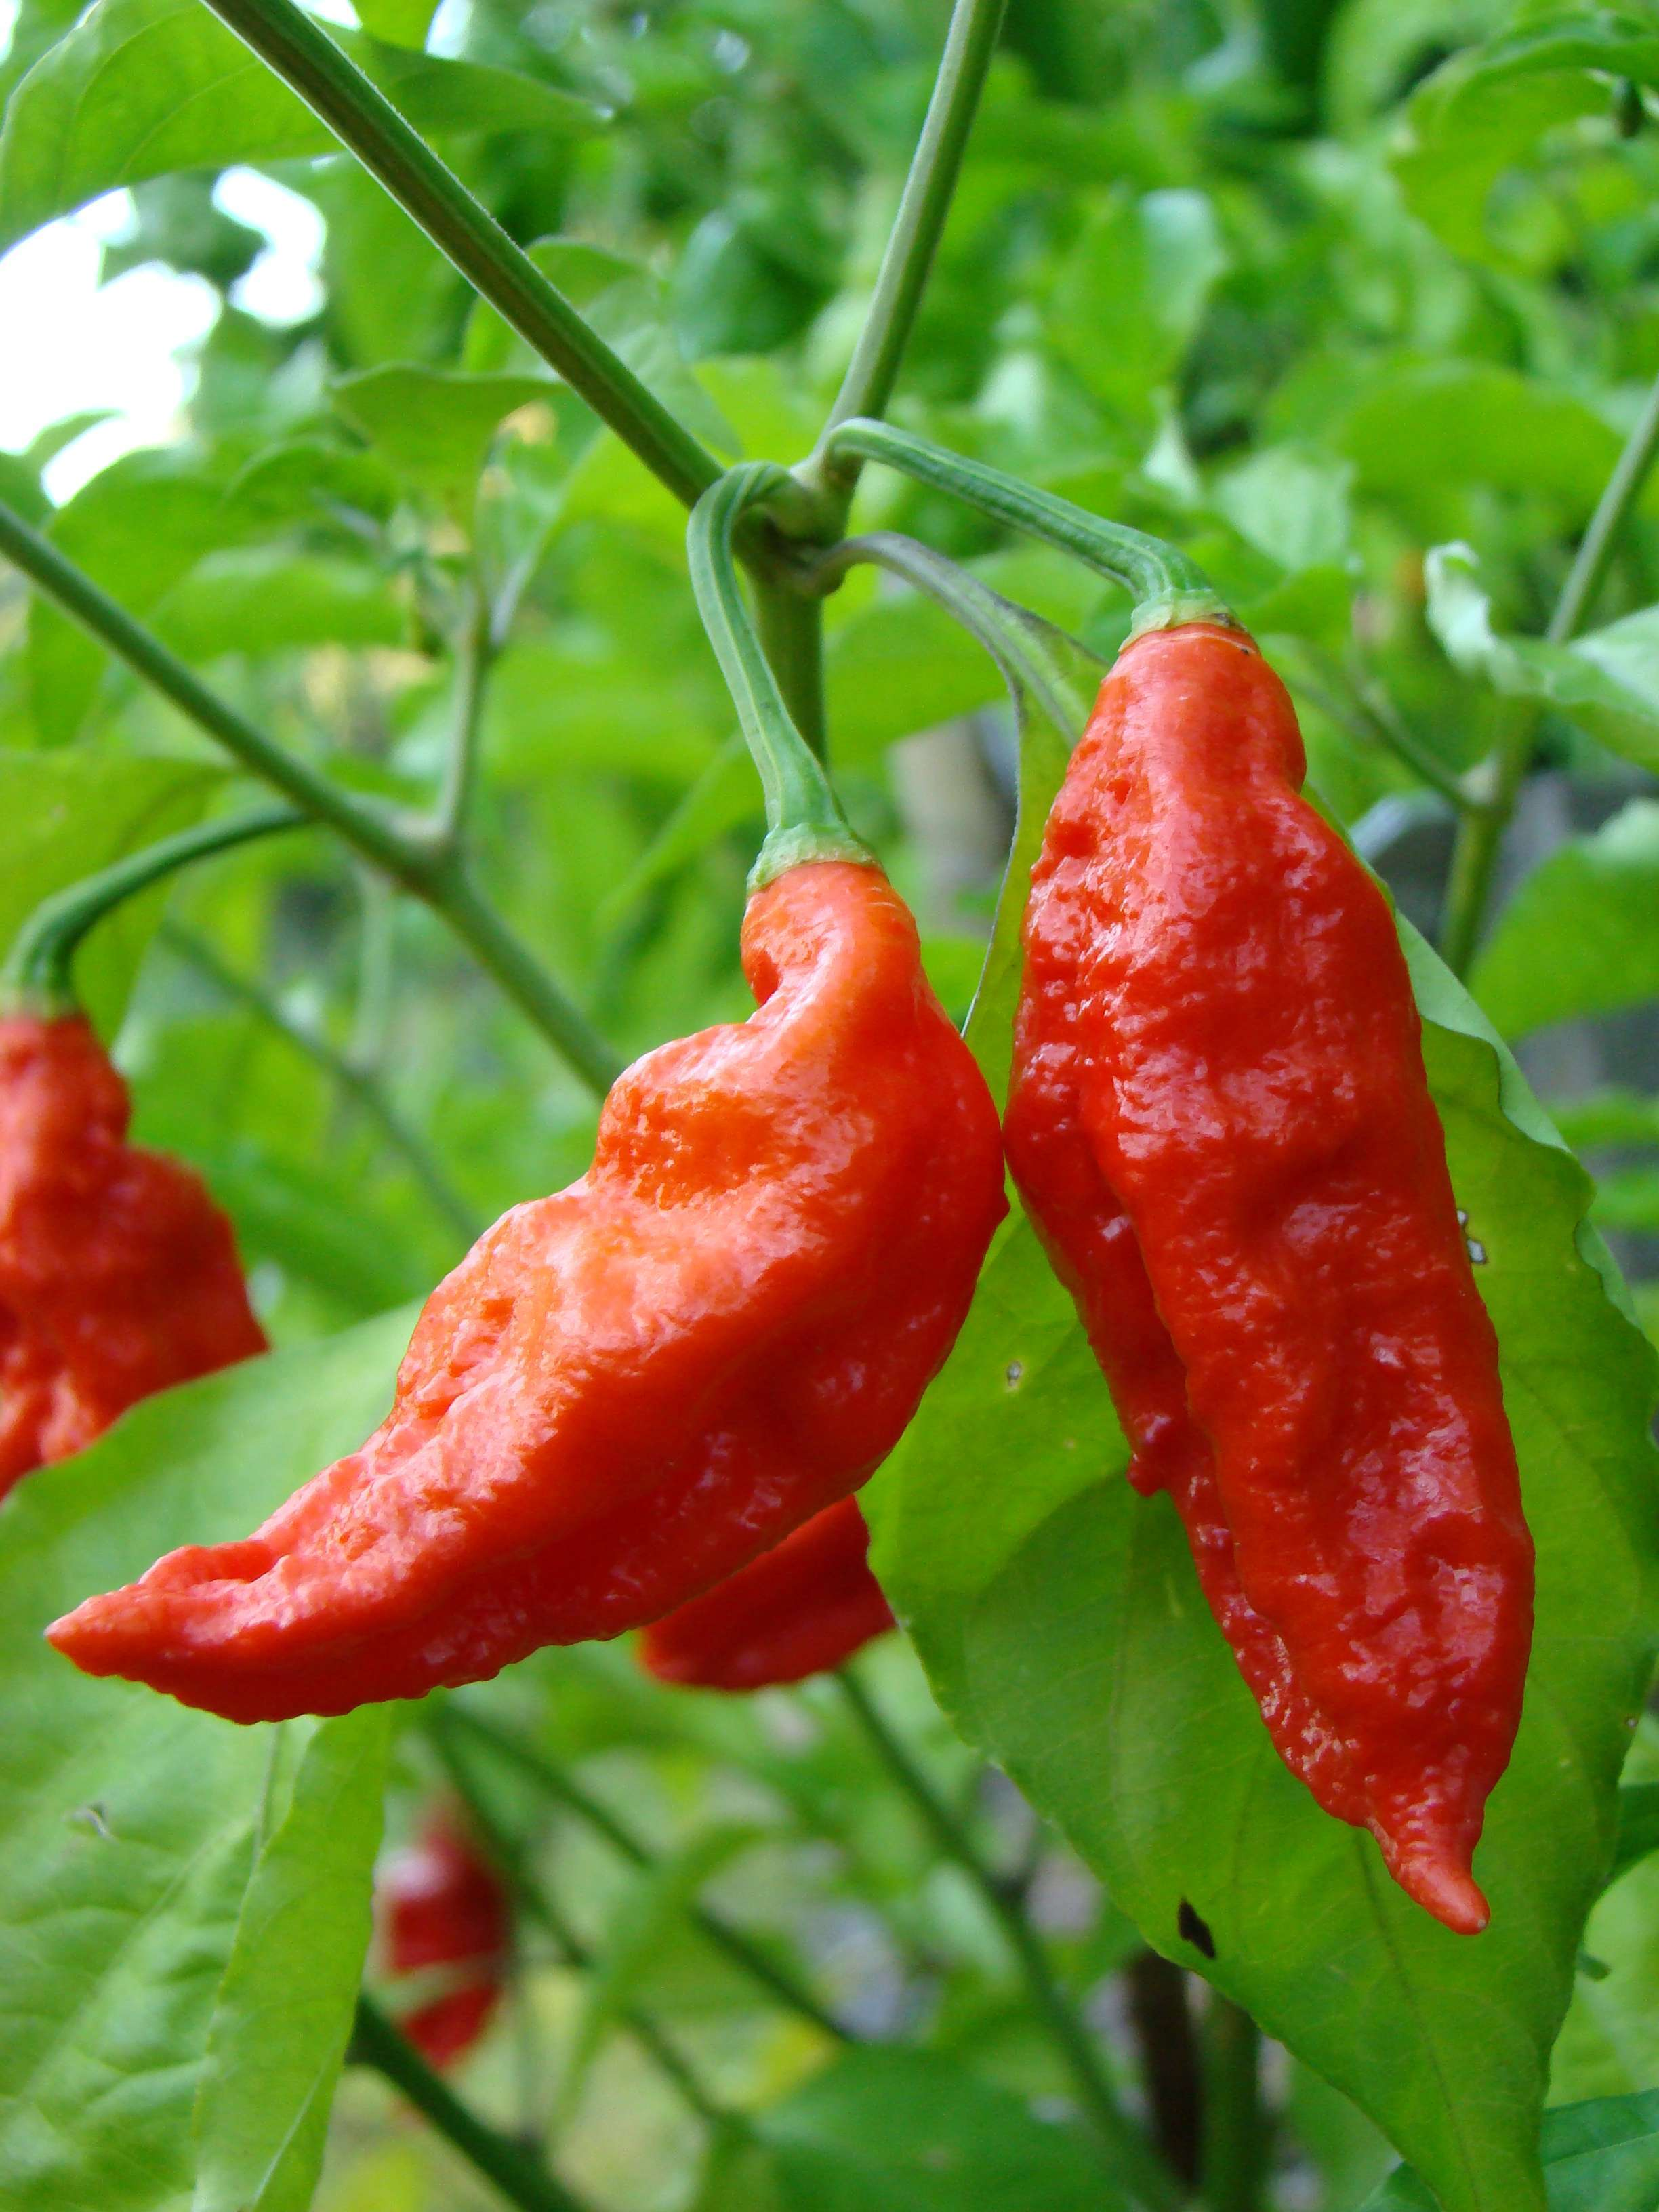 Bhut Jolokia Is No More The World's Hottest Chili